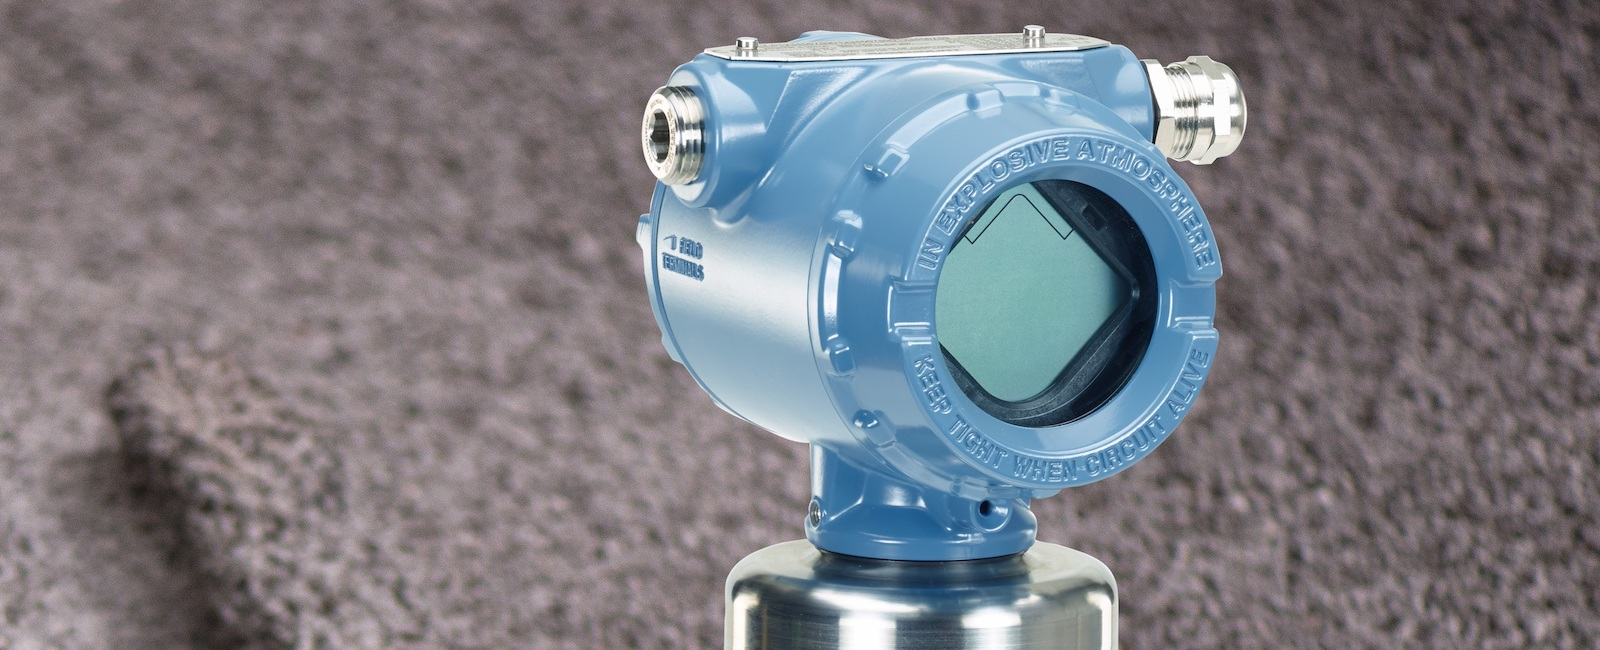 Emerson introduces Non-contacting Radar to meet Bulk Solids Level Measurement Challenges